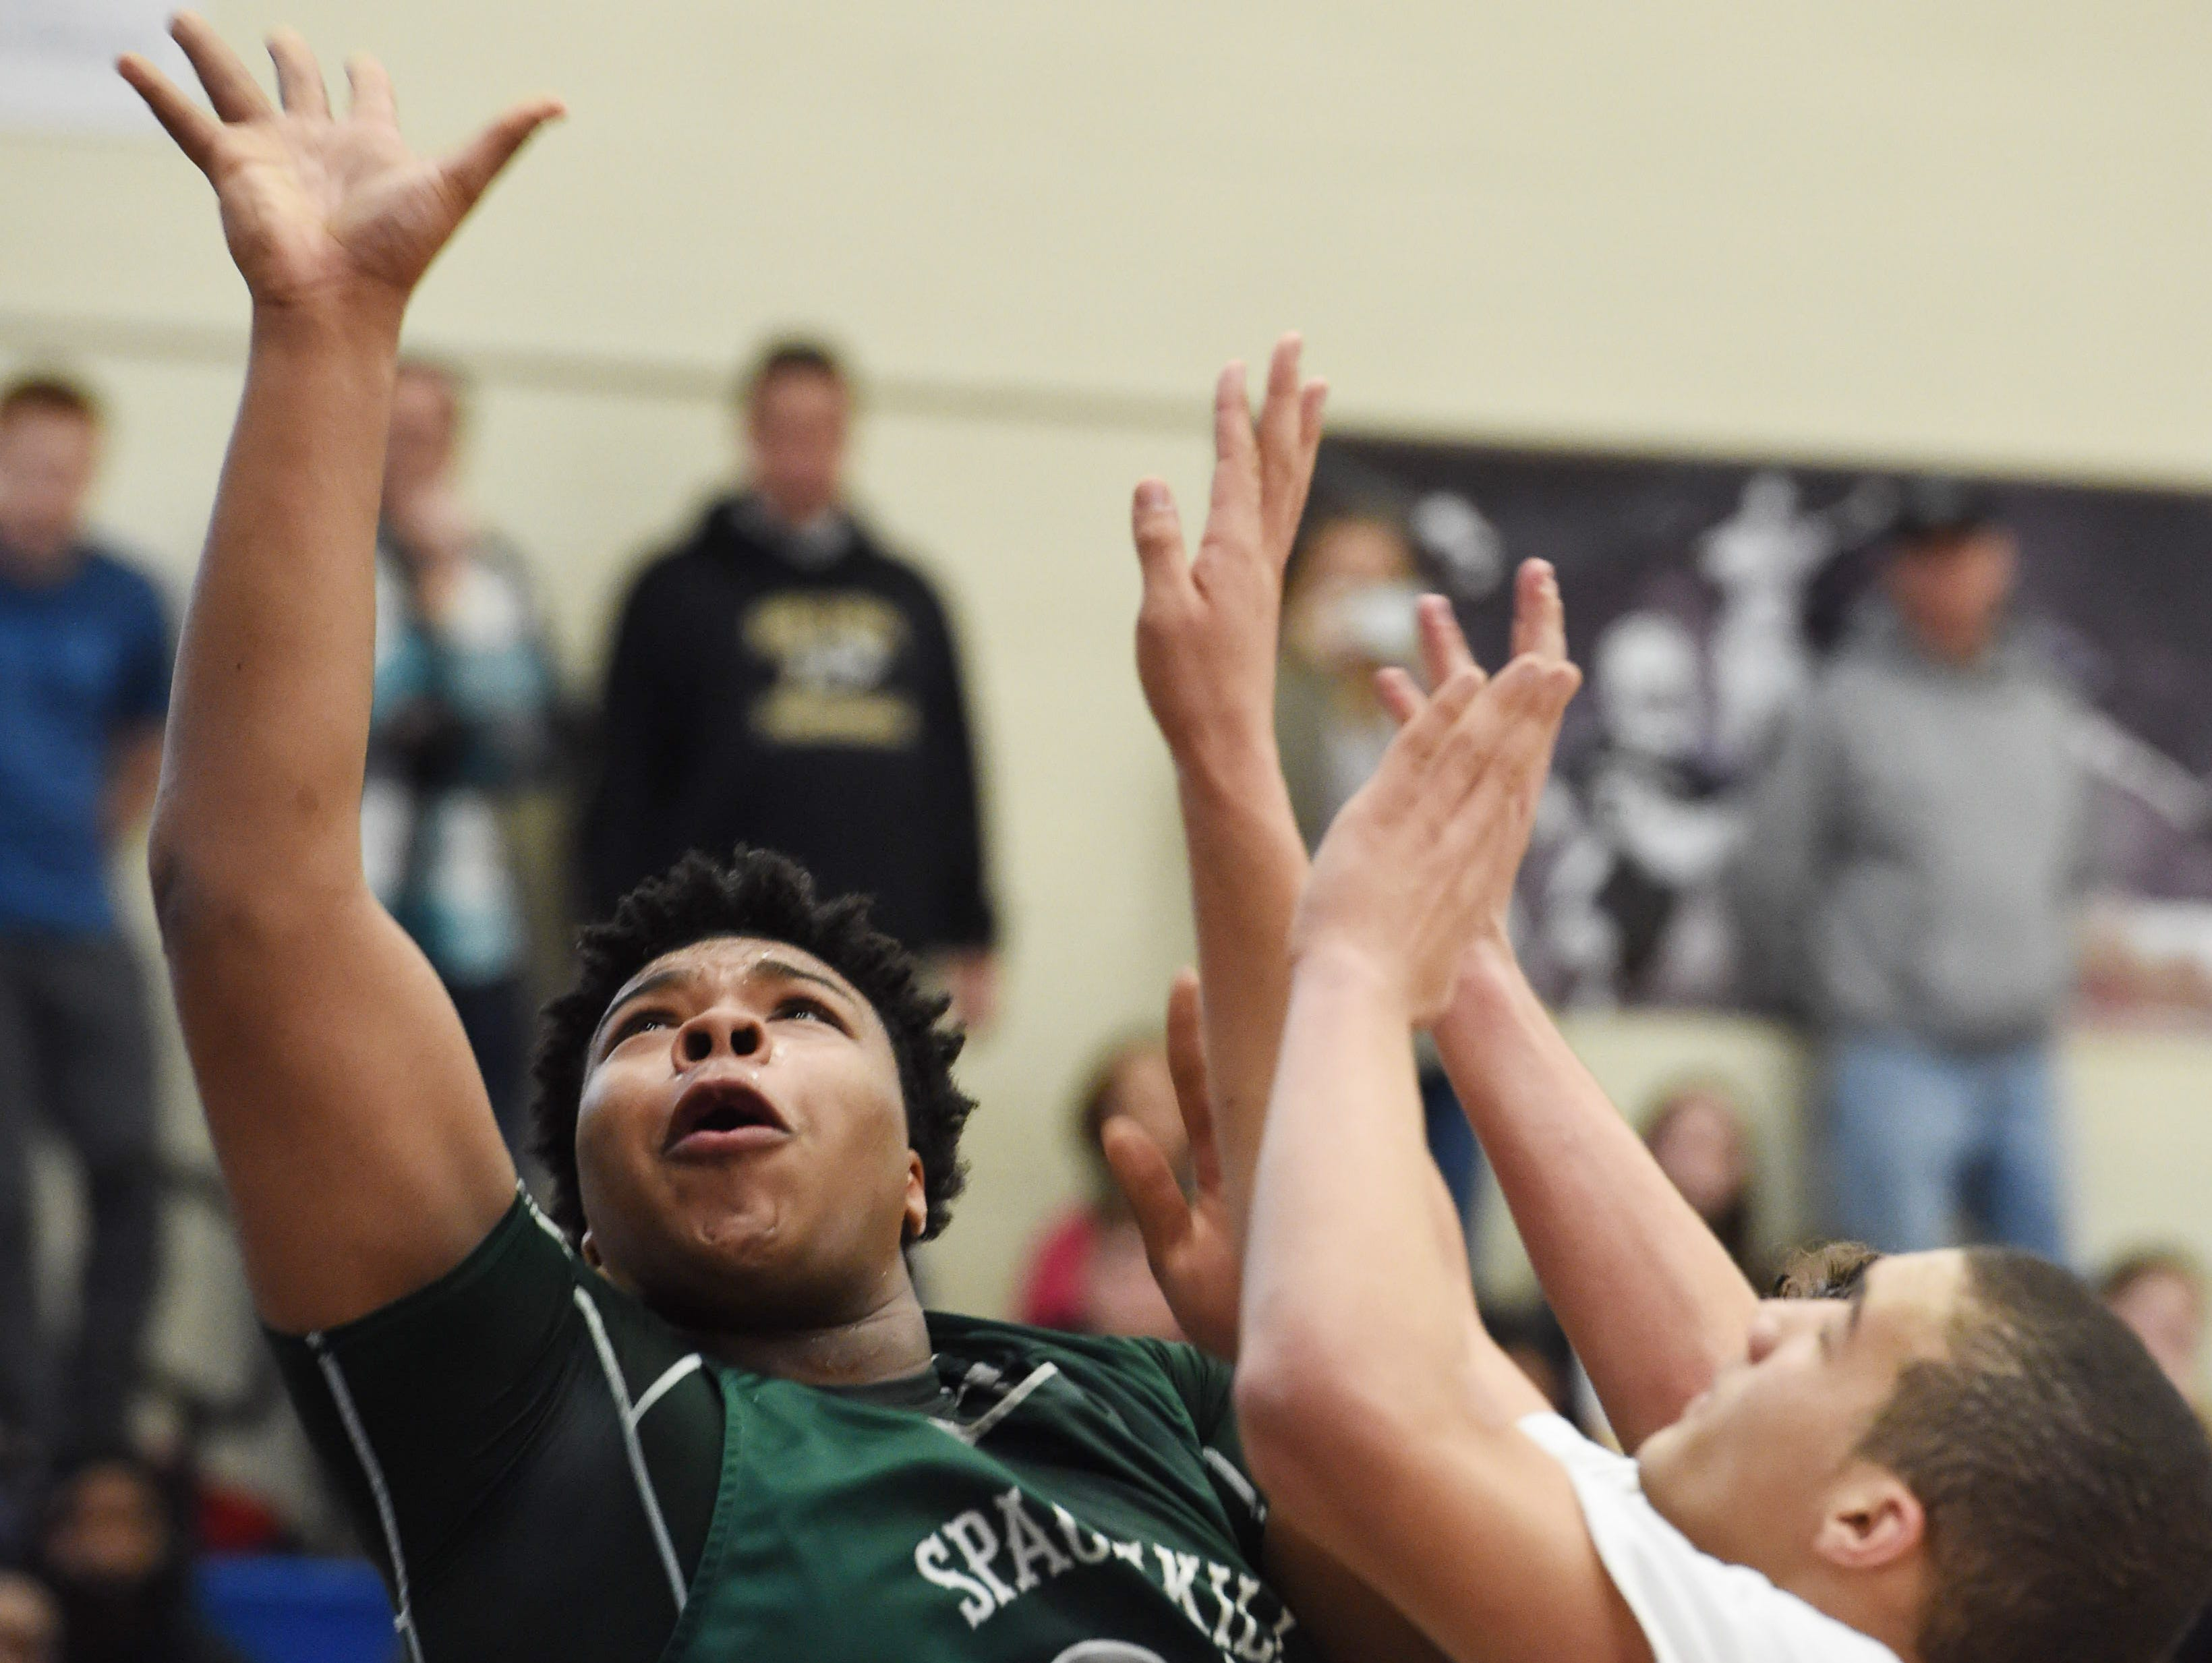 Spackenkill's Kyiev Bennermon, left, goes for a layup during Saturday's Class B regional final game against Center Moriches at Suffolk County Community College in Selden.